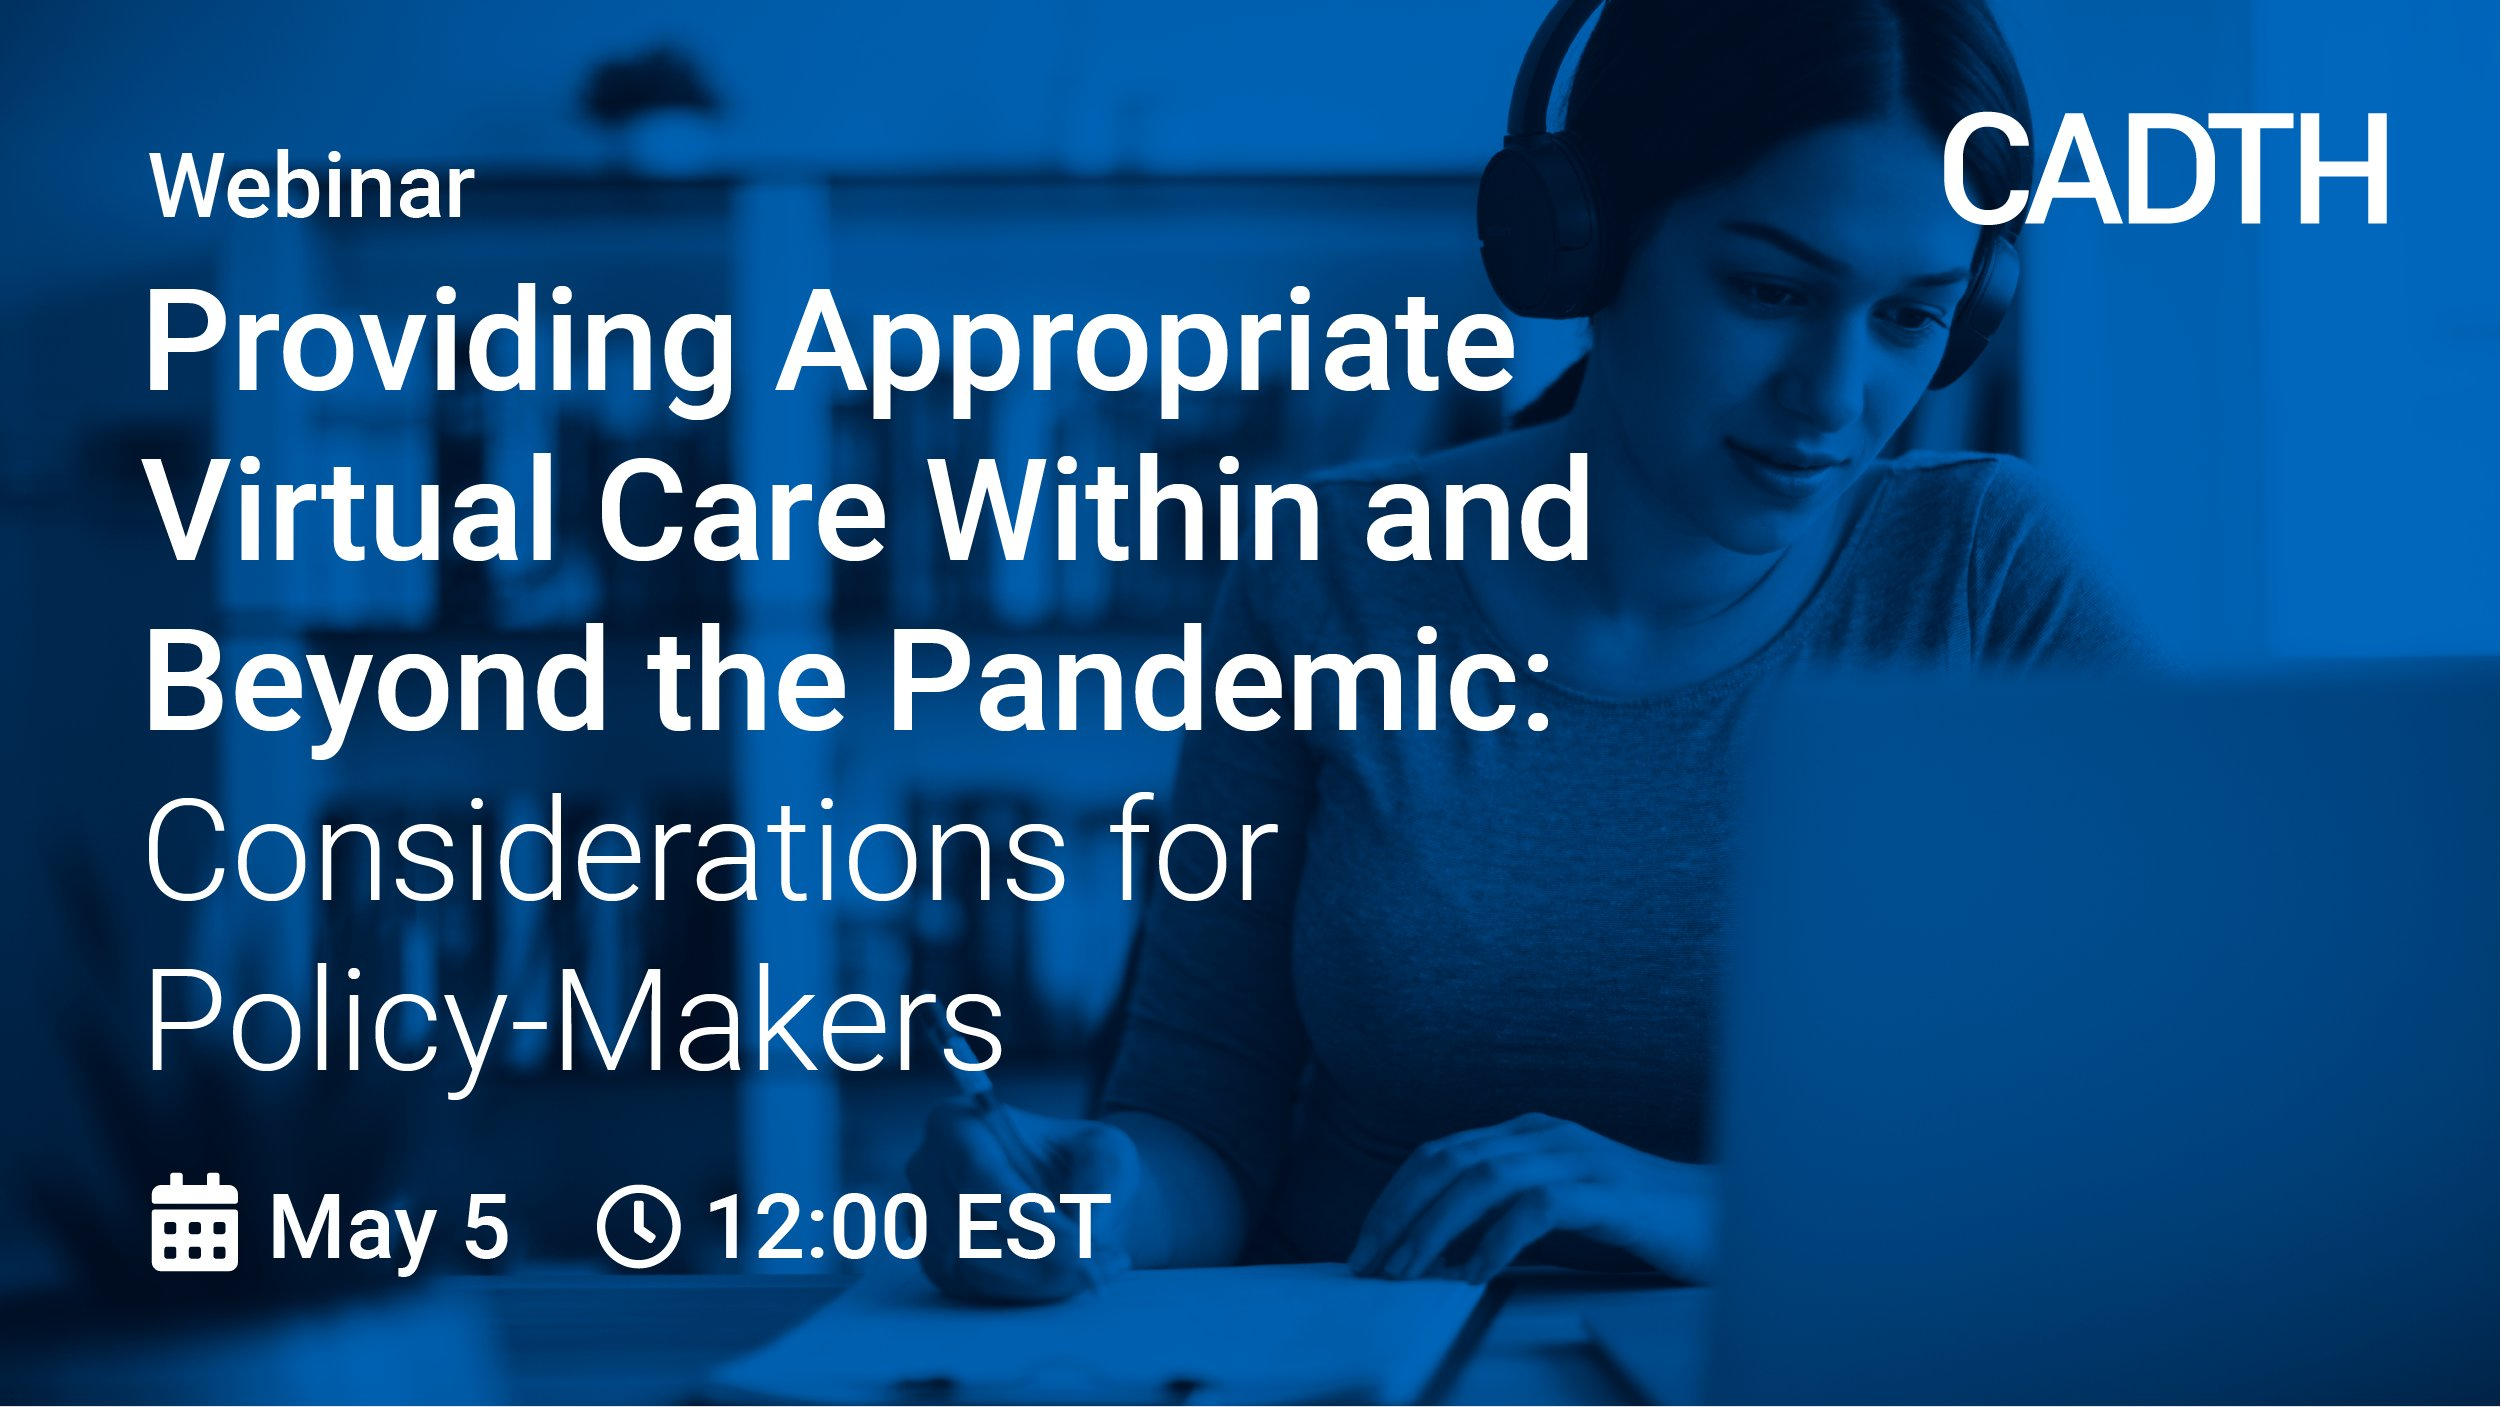 [CADTH Webinar] Providing Appropriate Virtual Care Within and Beyond the Pandemic: Considerations for Policy-Makers